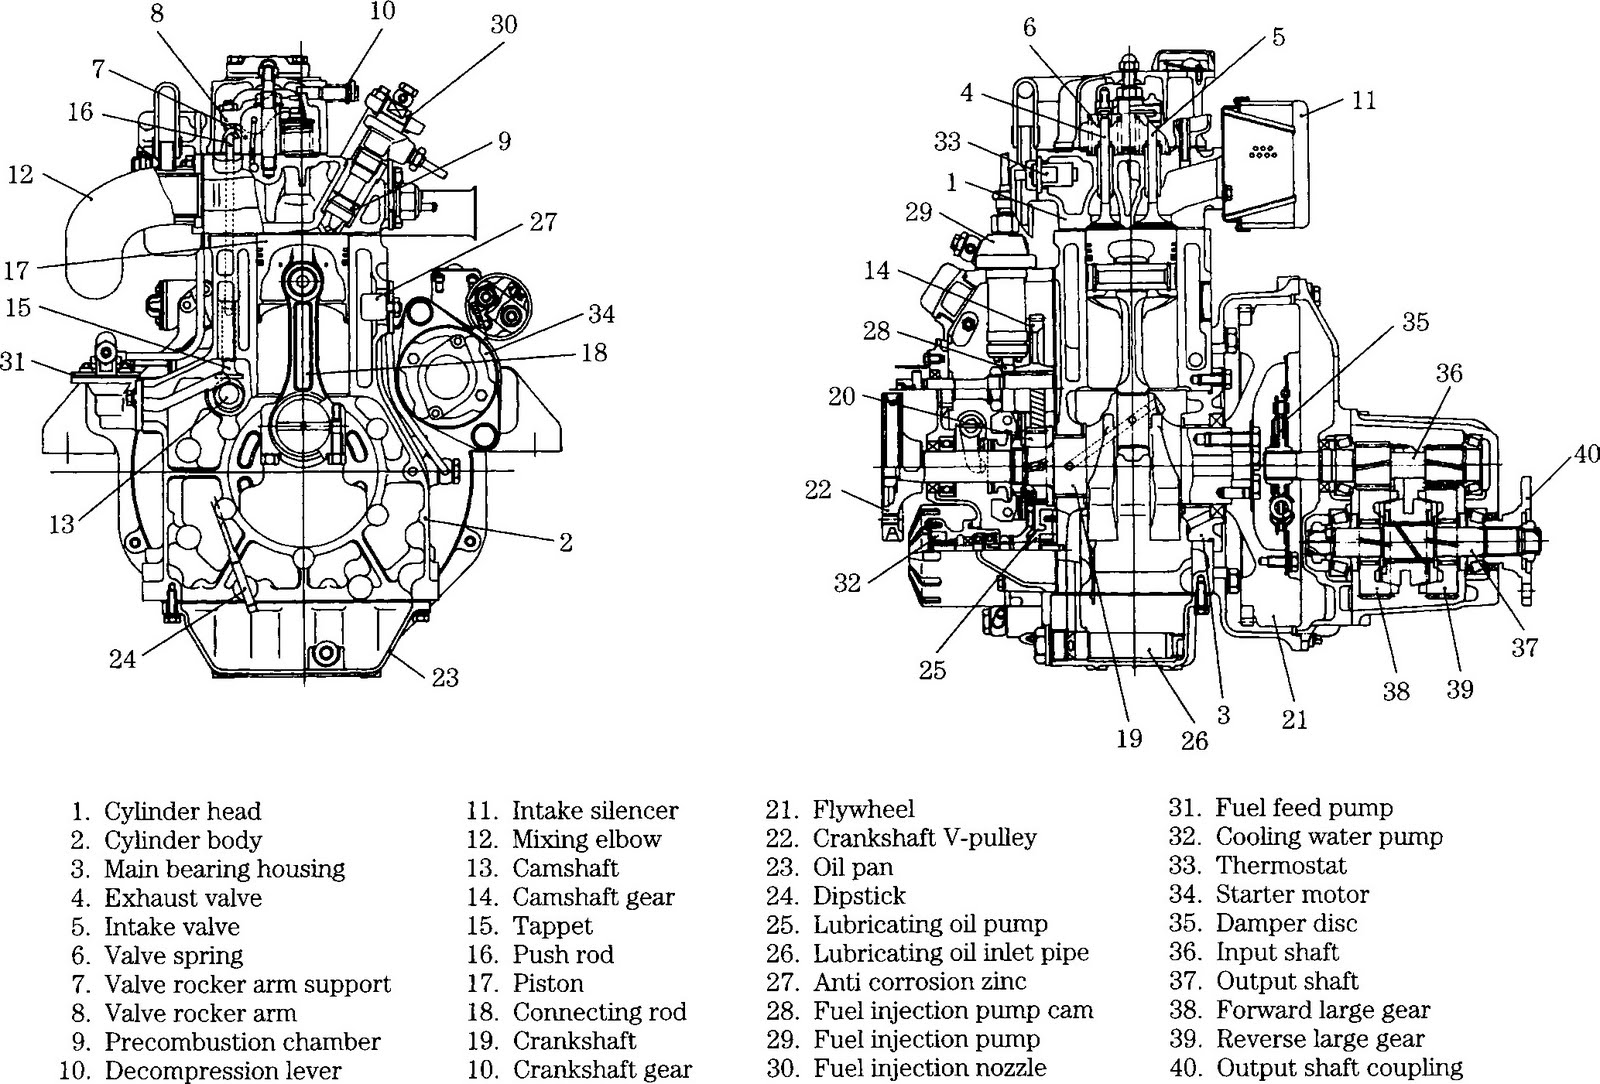 Yanmar 1gm10 Engine Diagram. Diagram. Auto Wiring Diagram